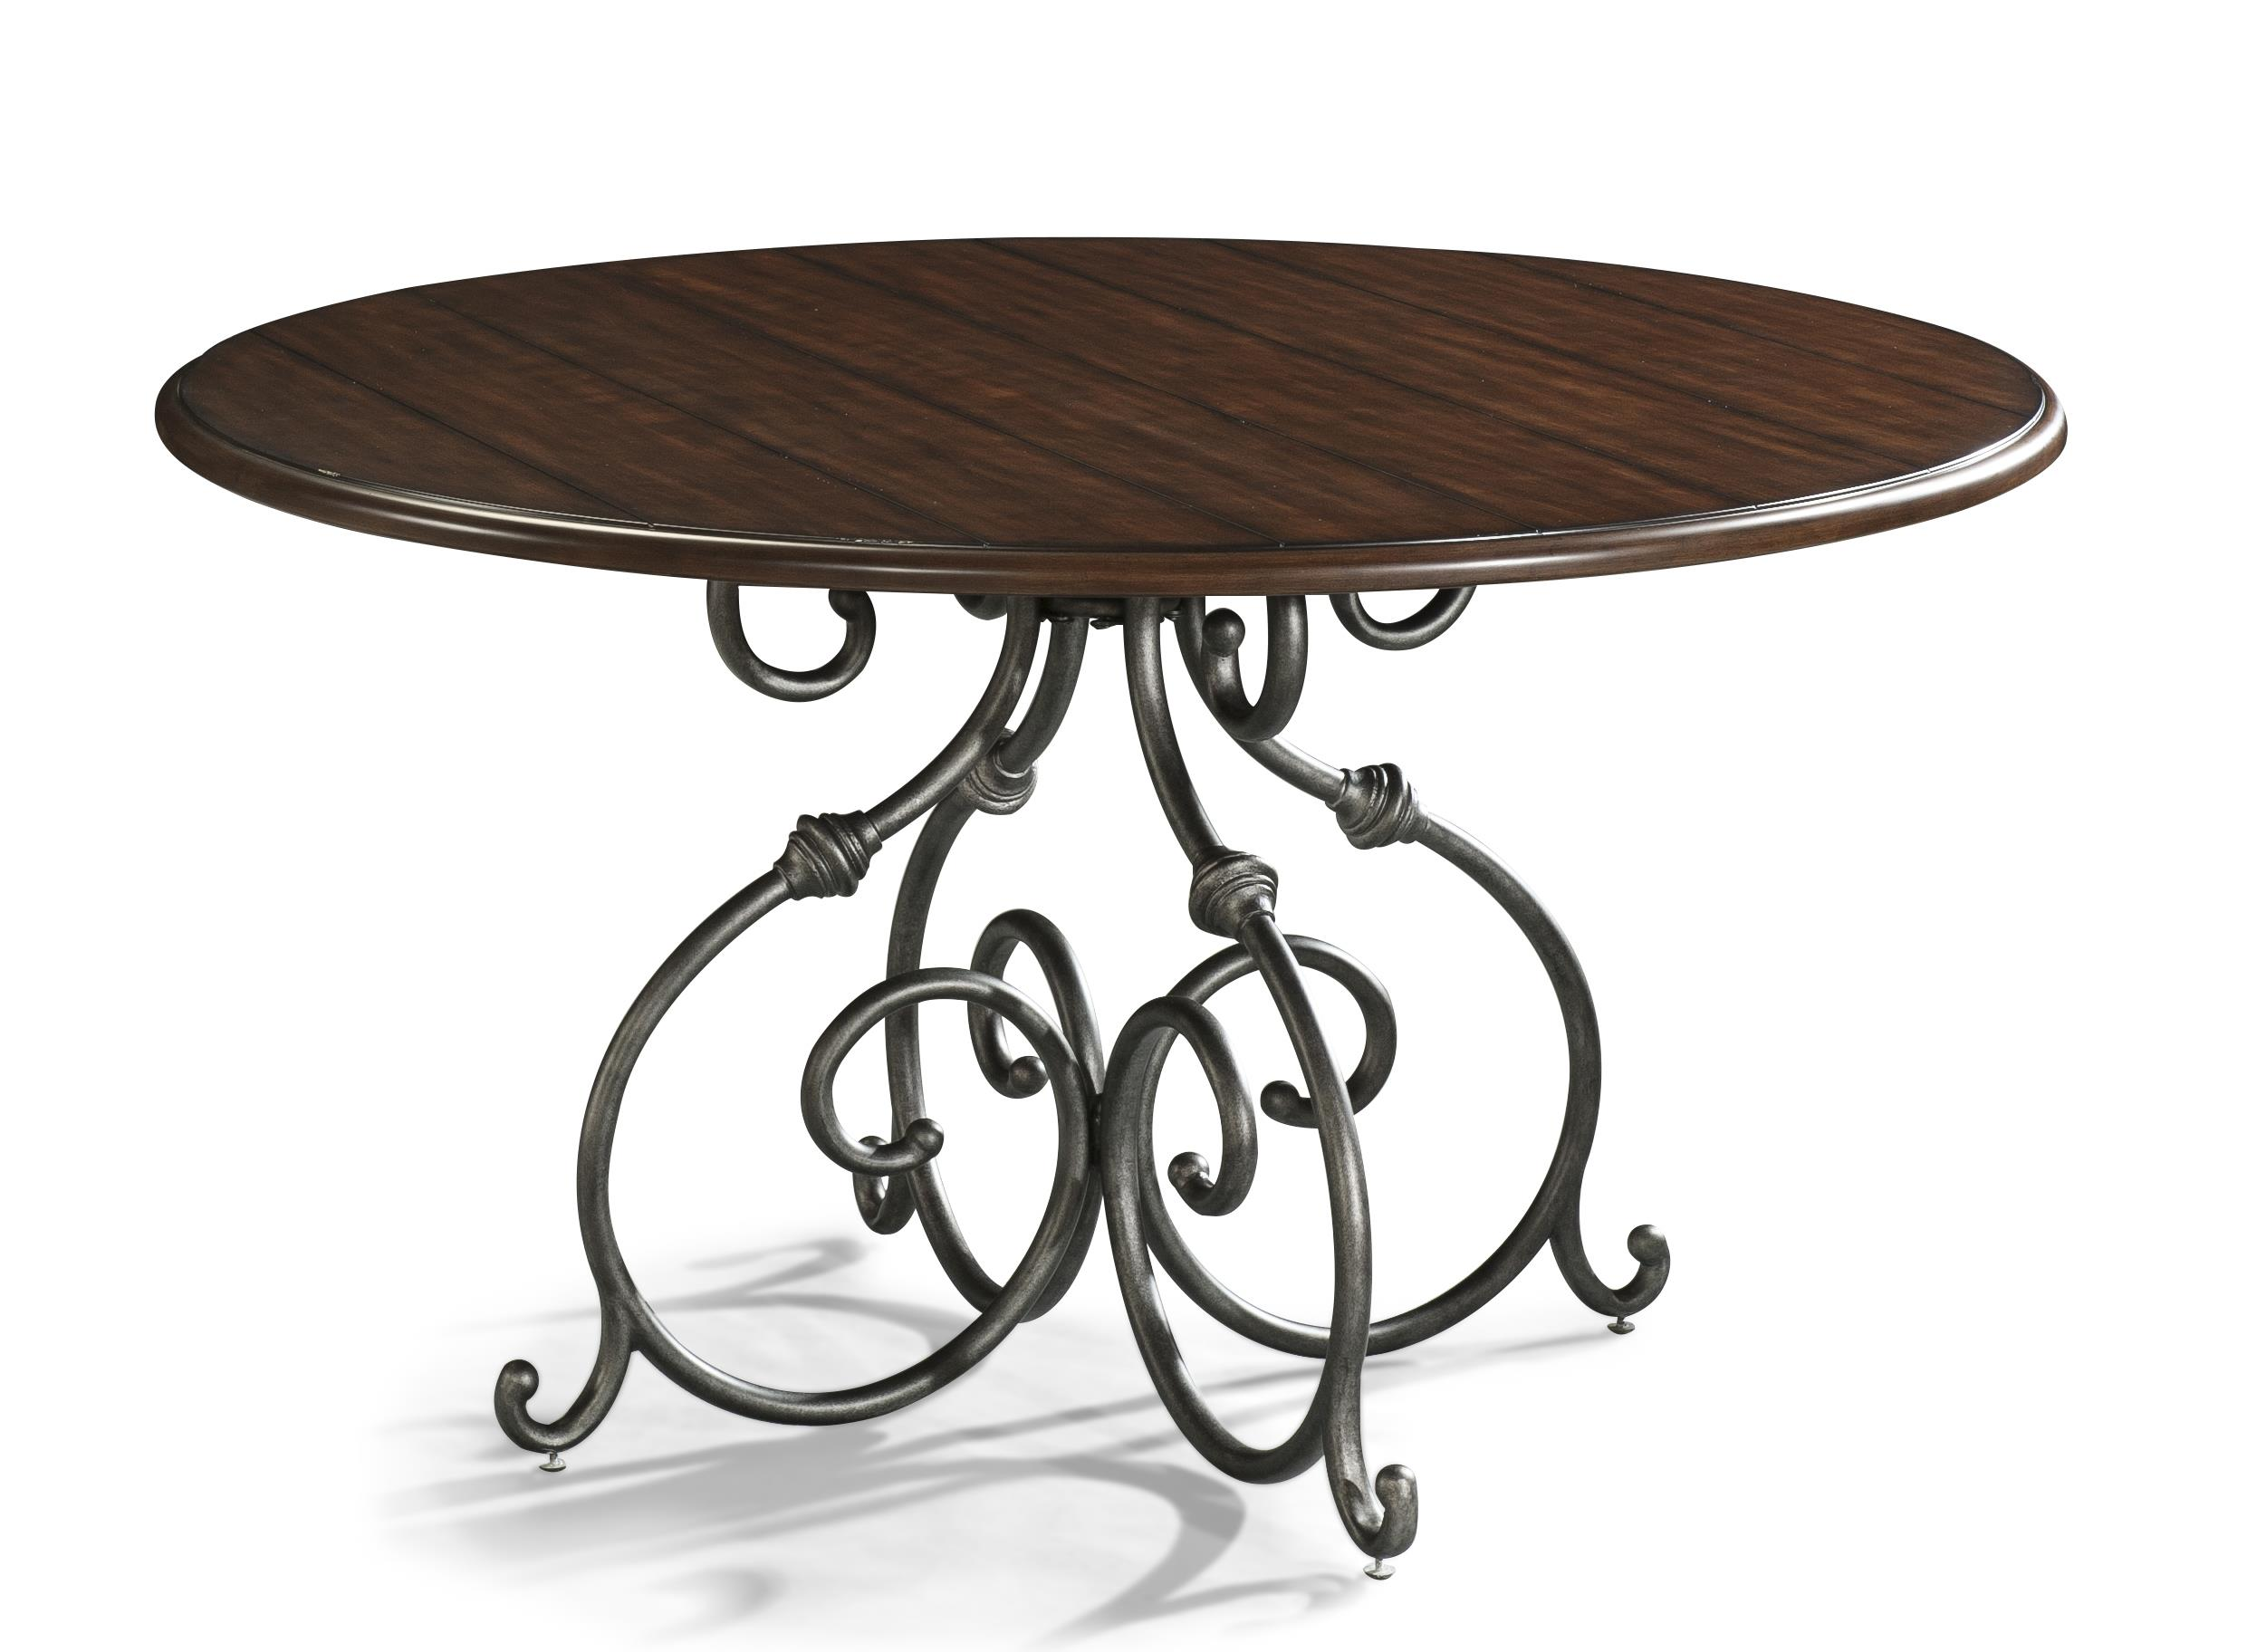 Easton Collection Blue Ridge Round Dining Table - Item Number: 426-054 DRT